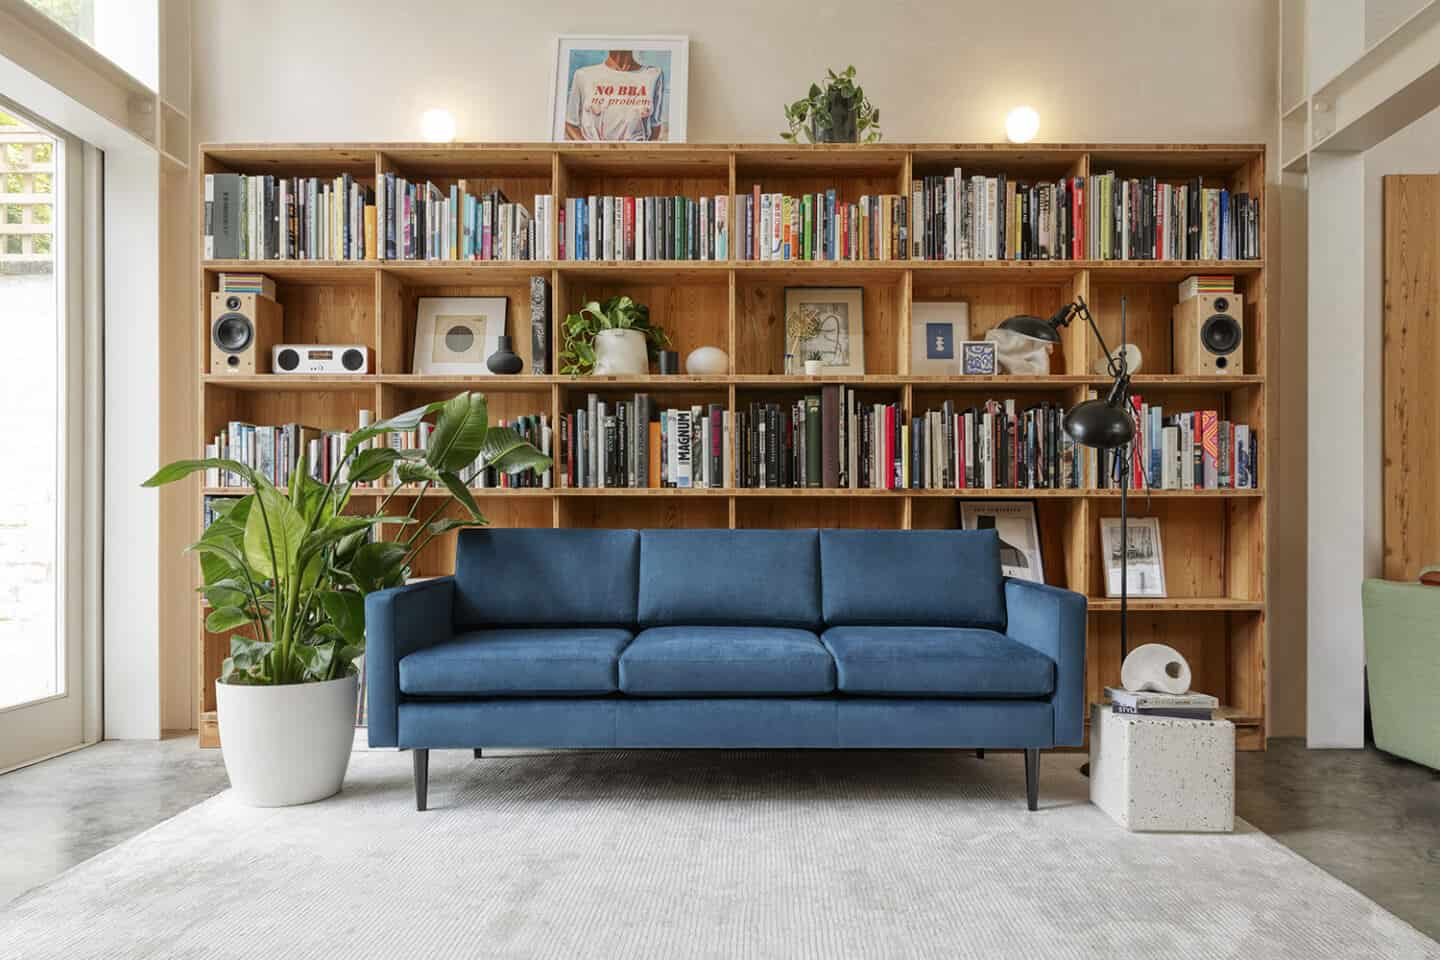 A blue sofa from Swyft Home on a grey rug, positioned next to a window and in front of a large wooden bookcase